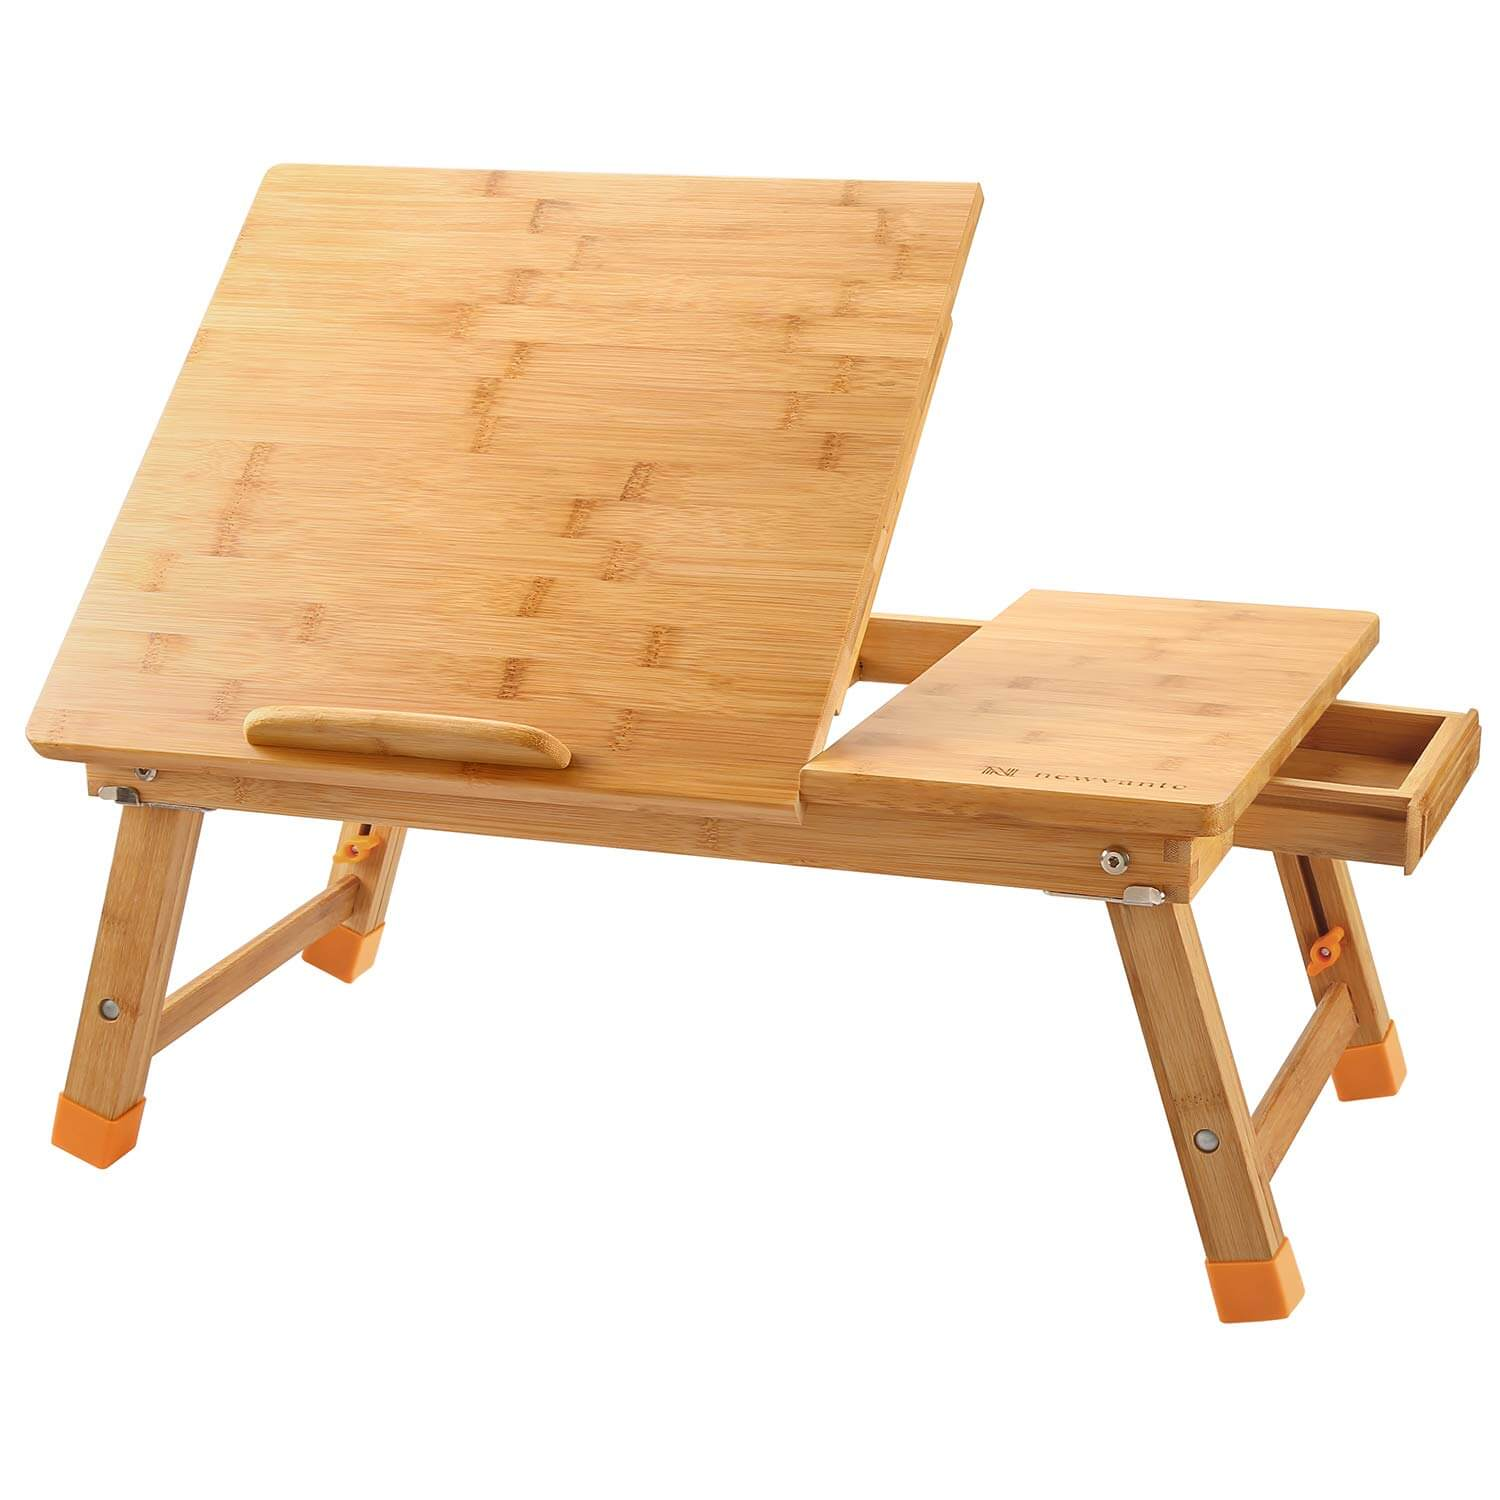 A wooden desk designed to be used while laying in bed.